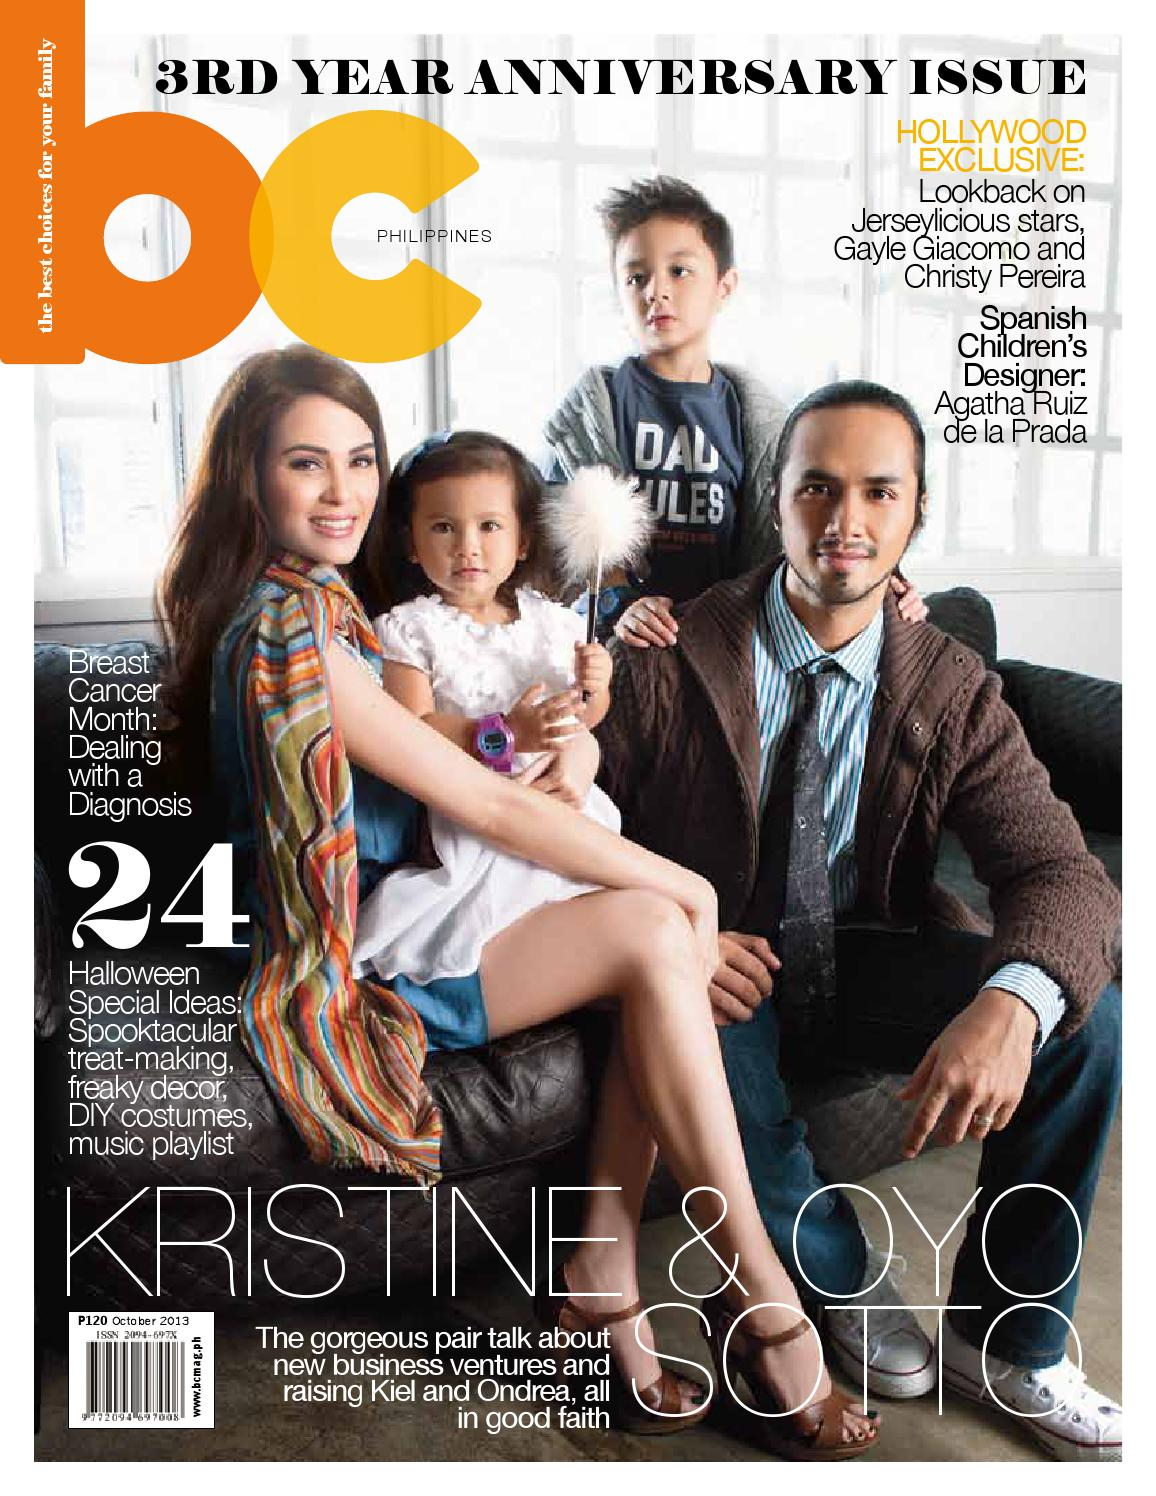 BC Philippines October 2013 Kristine And Oyo Sotto Cover 2